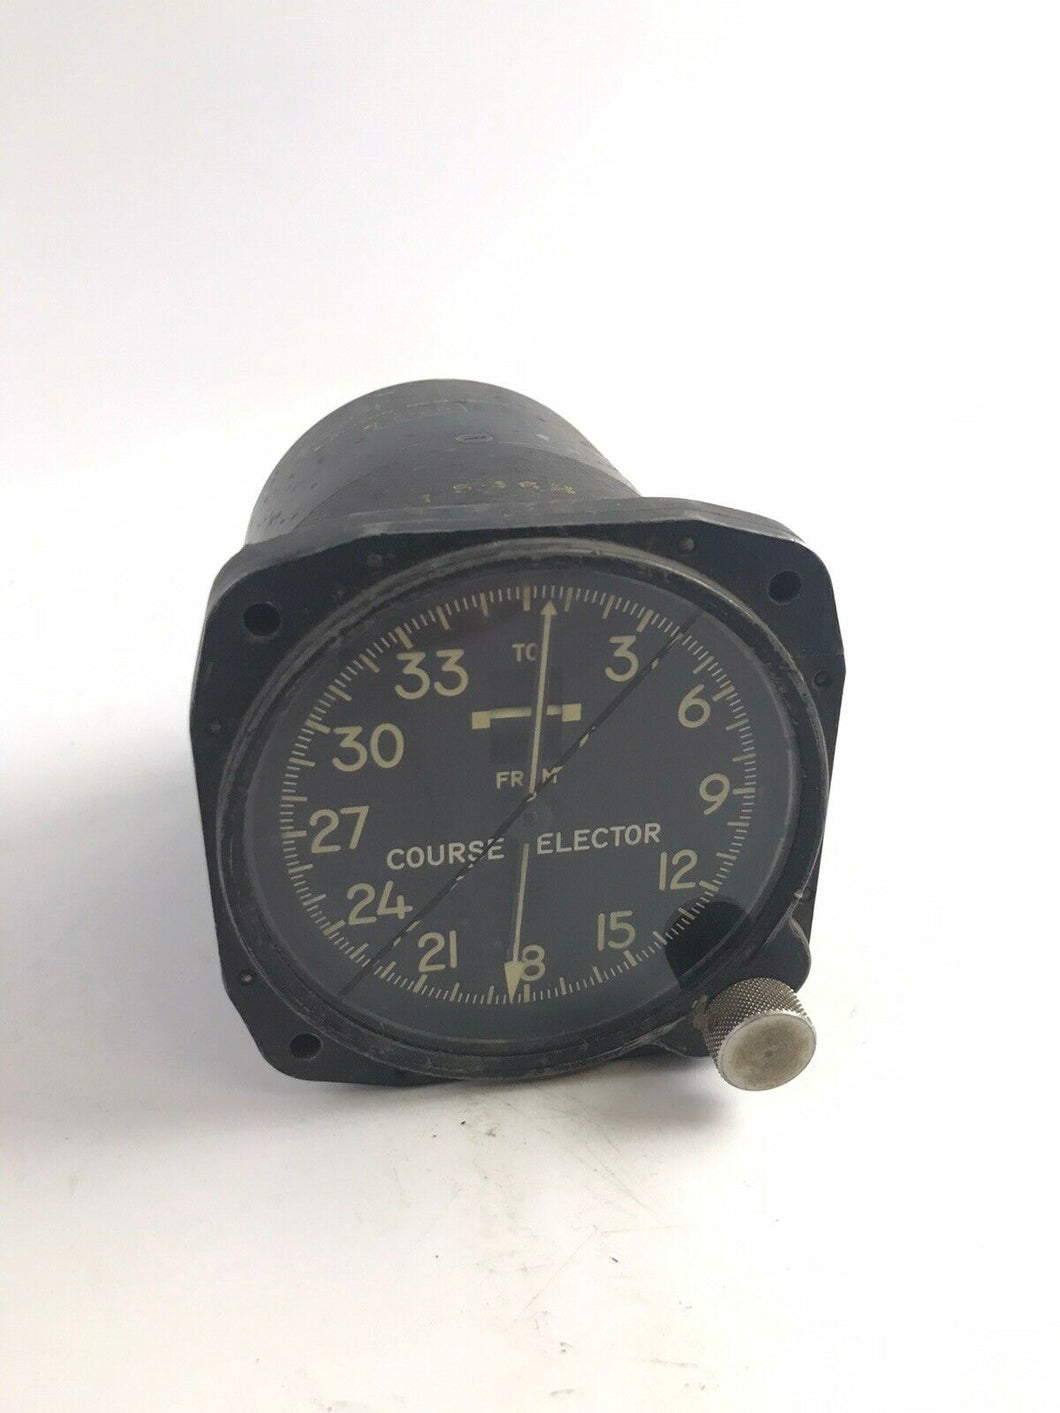 WW2 Course Selector Gauge Serial No.8841 -5320